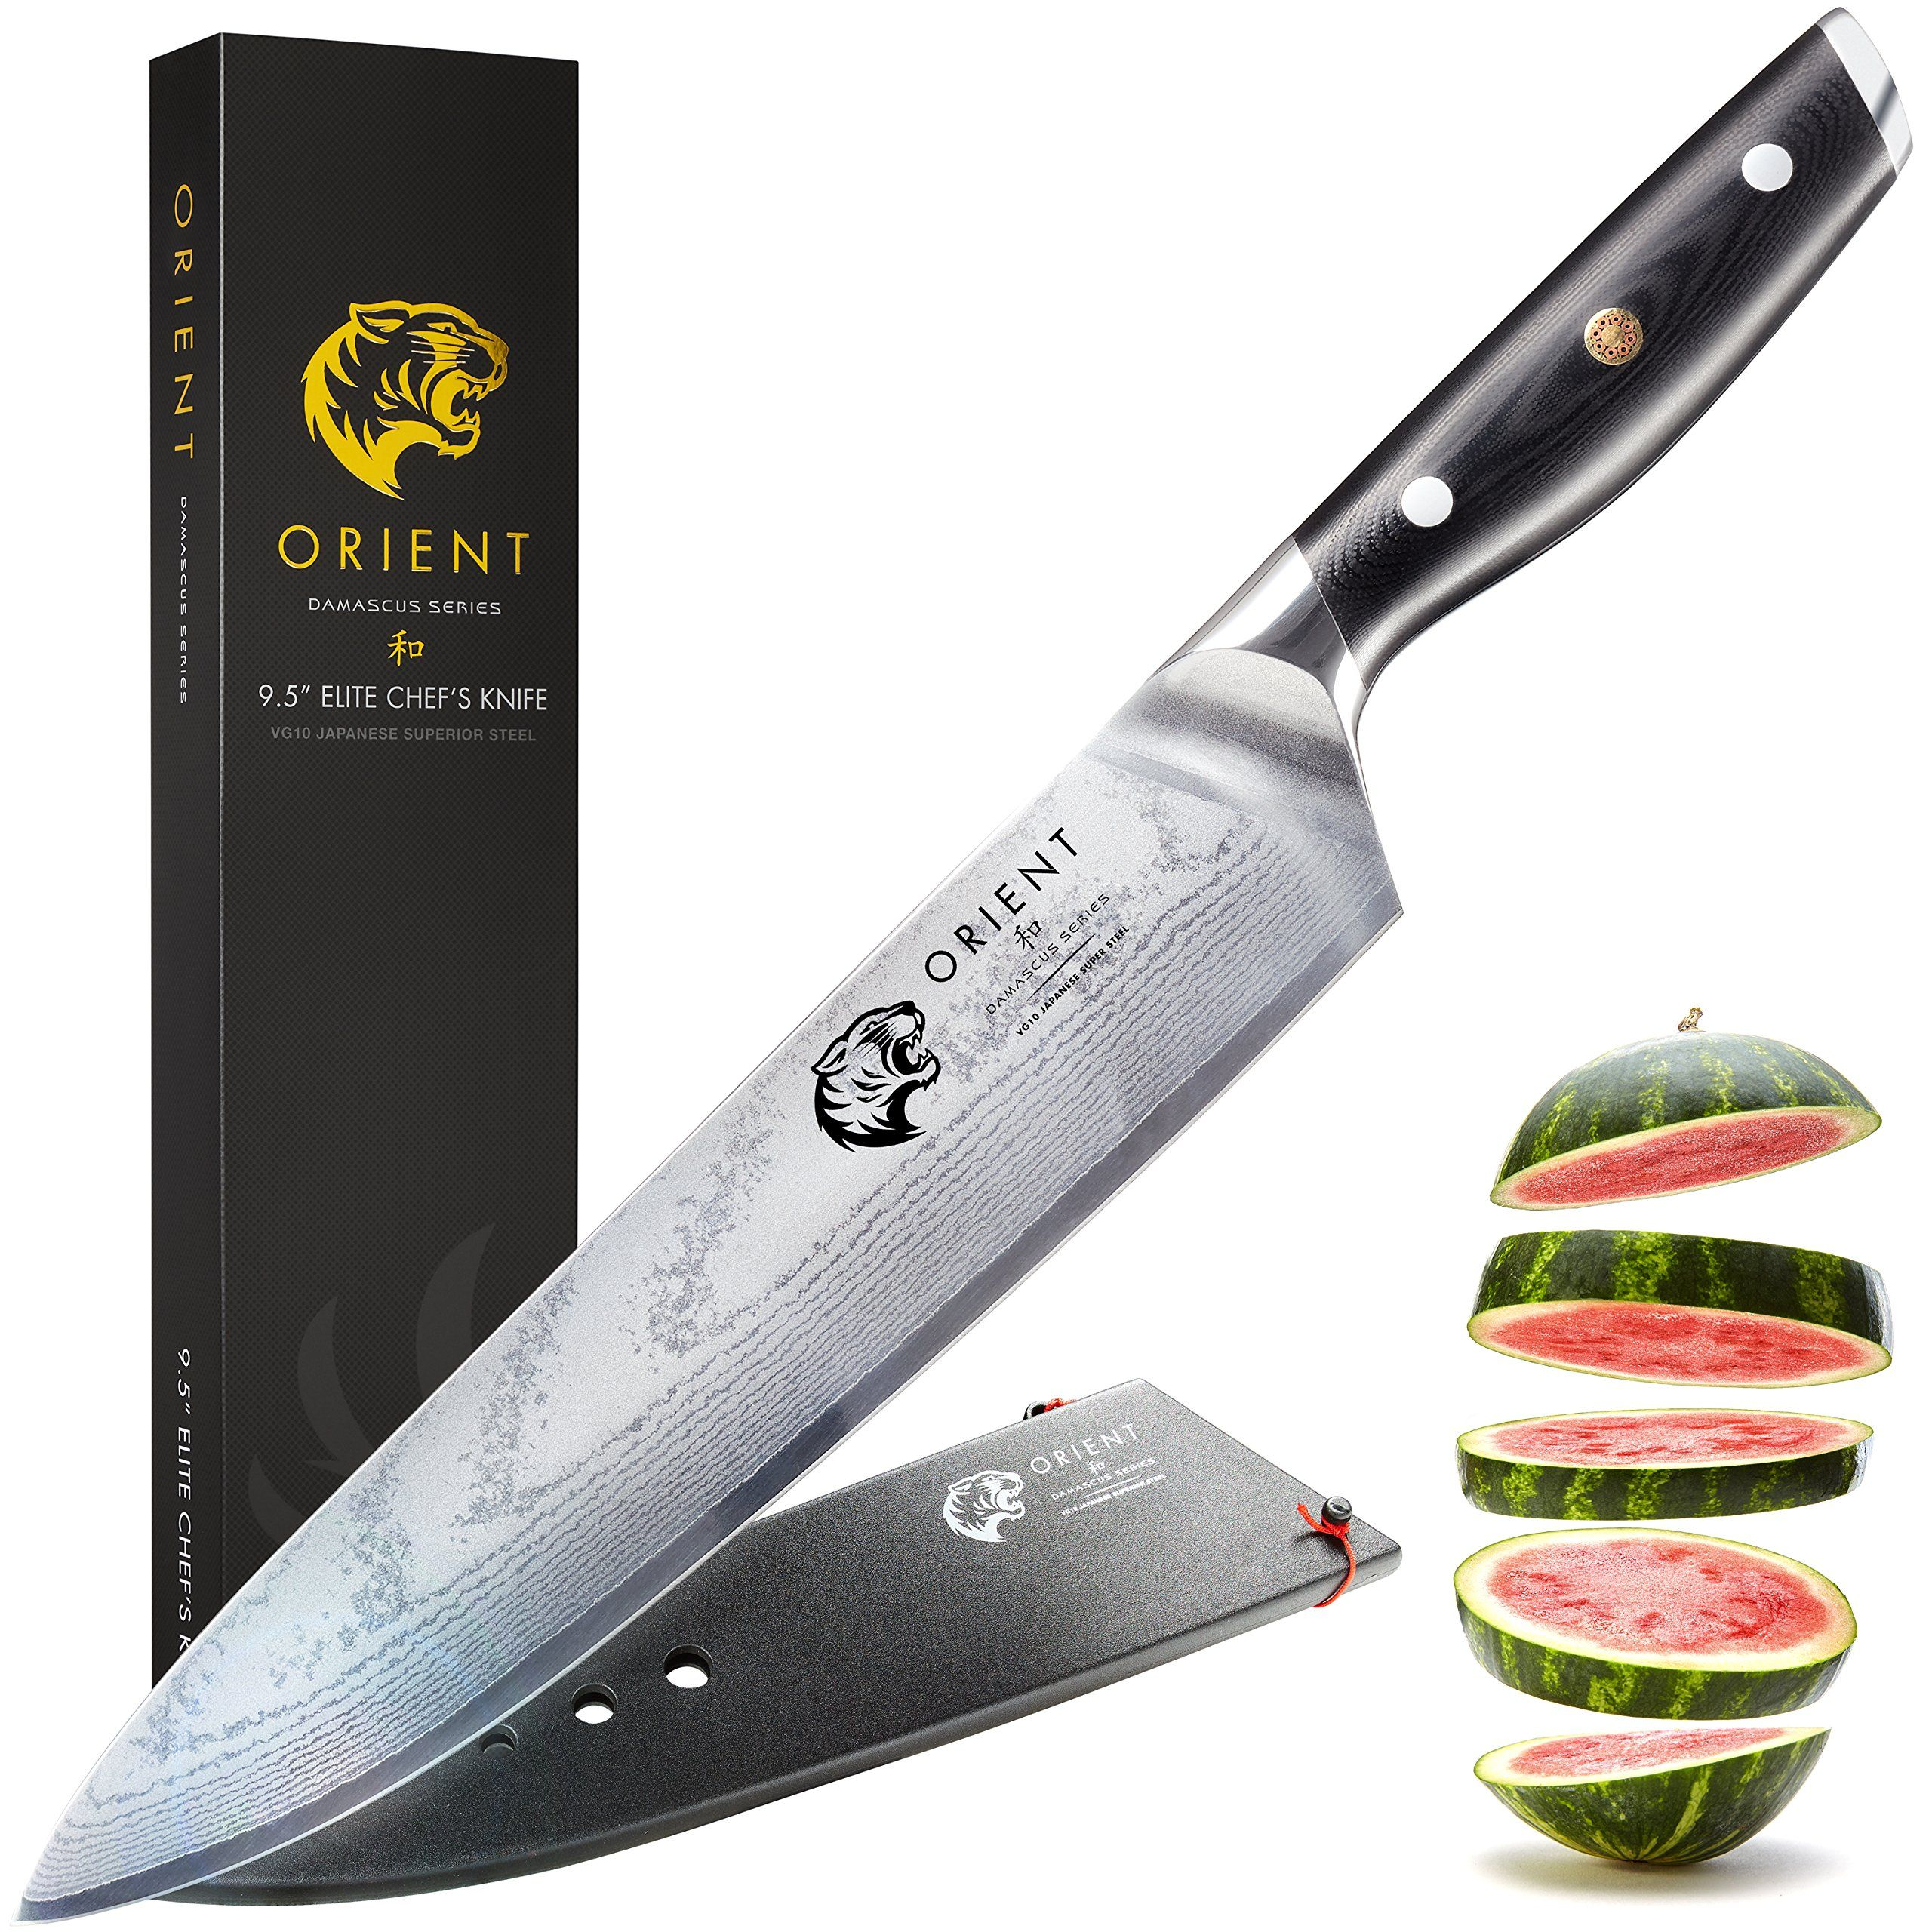 Japanese Damascus Steel 9.5 inch Chef Knife – VG10 Damascus Series ...